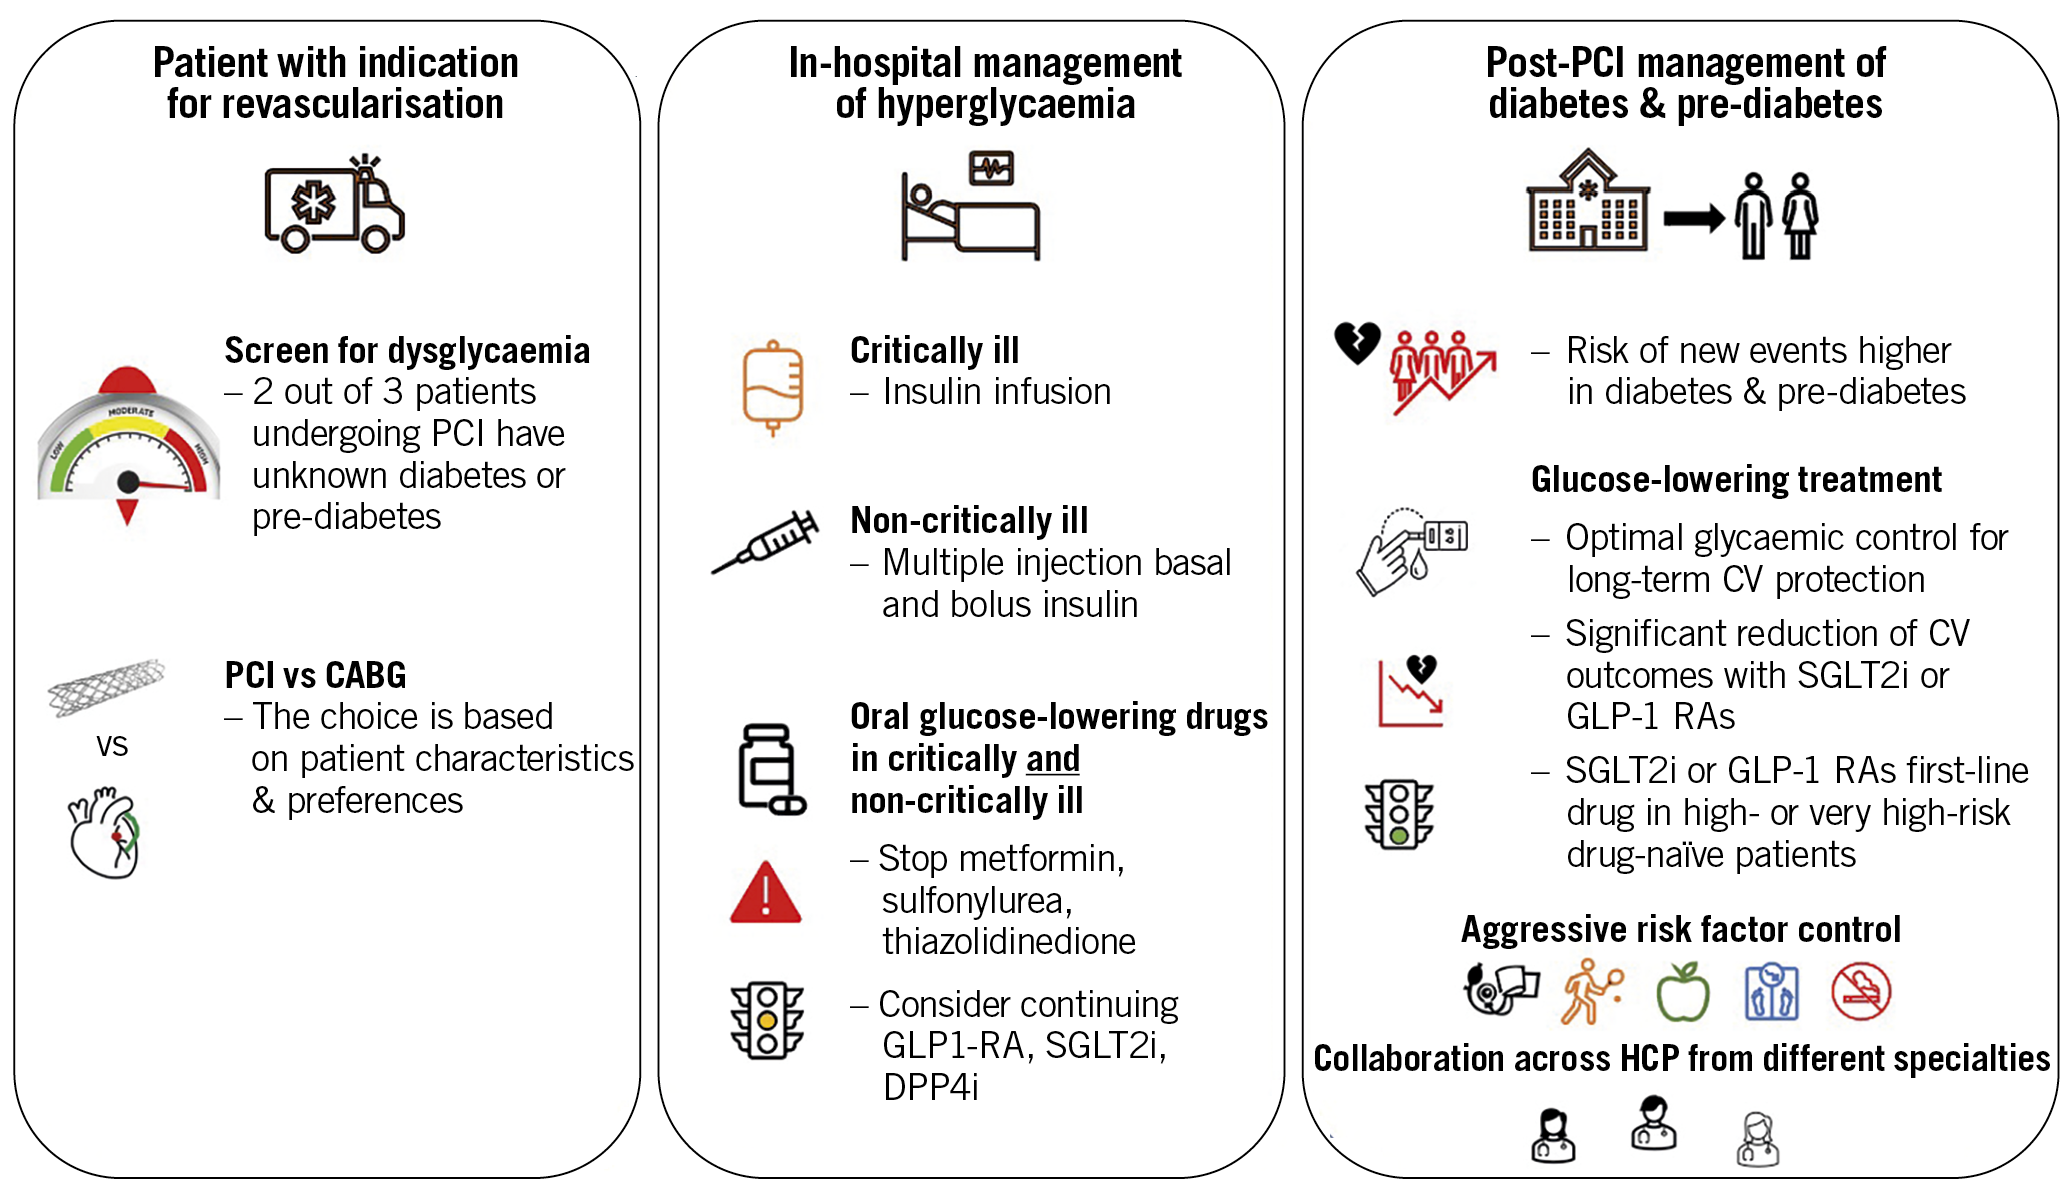 Central illustration. Considerations relating to dysglycaemia in patients undergoing percutaneous coronary intervention. The left panel highlights that diabetes and pre-diabetes are overrepresented in patients undergoing percutaneous coronary intervention (PCI). Patients with an indication for revascularisation therefore should be screened for dysglycaemia at presentation and attention should be given to the most appropriate revascularisation method. The middle panel highlights important considerations for glucose-lowering therapy in these patients during and after PCI. The right panel highlights that patients with dysglycaemia have a higher risk of new events after PCI and points to the importance of optimal long-term control of dysglycaemia as well as other risk factors post PCI.